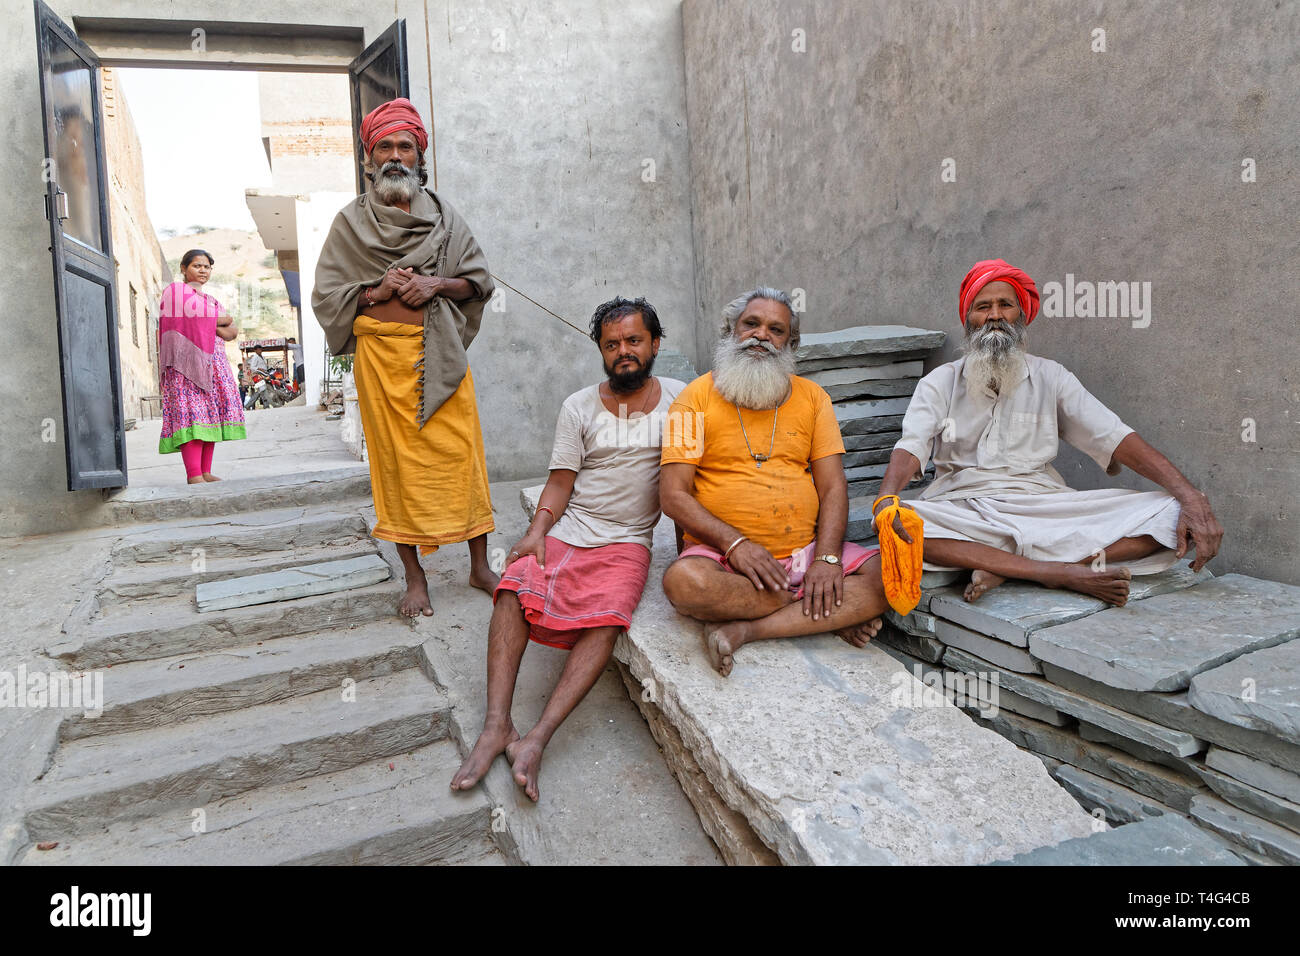 JAIPUR, INDIA, October 27, 2017 : Sadhus in an Ashram. A sadhu is a religious ascetic, mendicant or any holy person in Hinduism and Jainism who has re - Stock Image